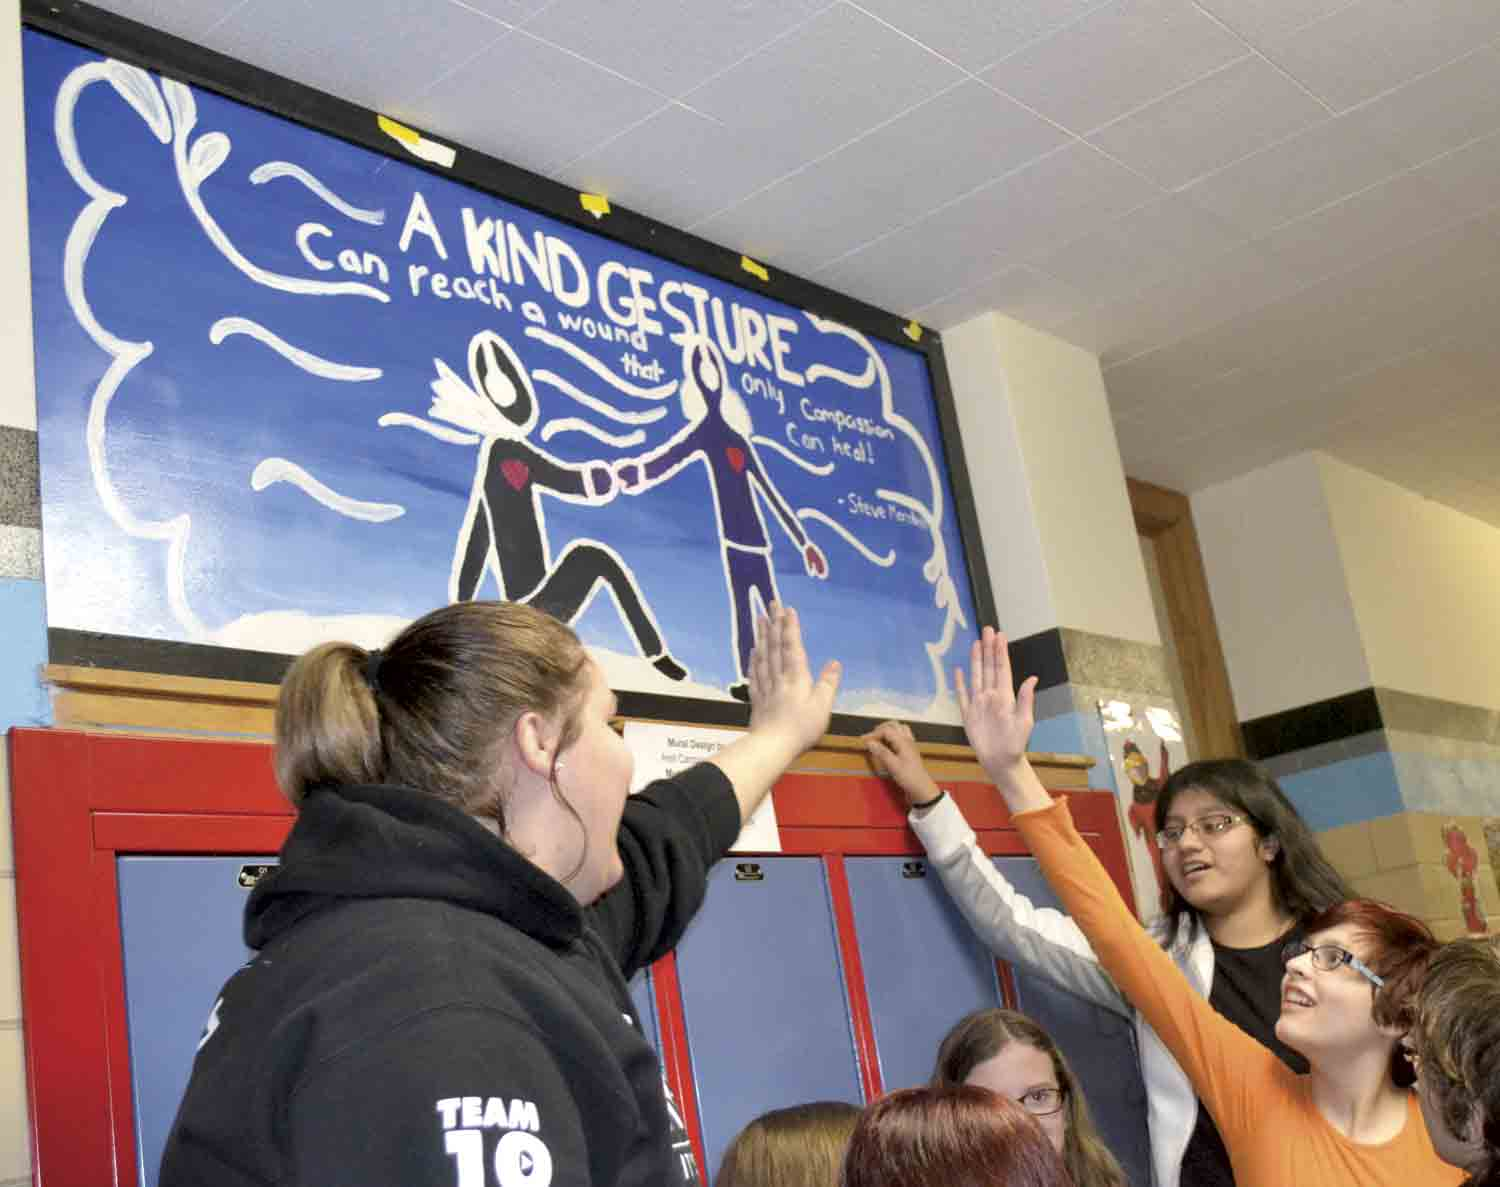 During last week's unveiling at North Fayette Valley Middle School, Cassidy Mohler, Areli Campos-Morales, and Sierra Kemp (clockwise from left) give a high-five as they unveil their original mural, which was designed by Campos-Morales. Many of the 12 student-created murals had themes...